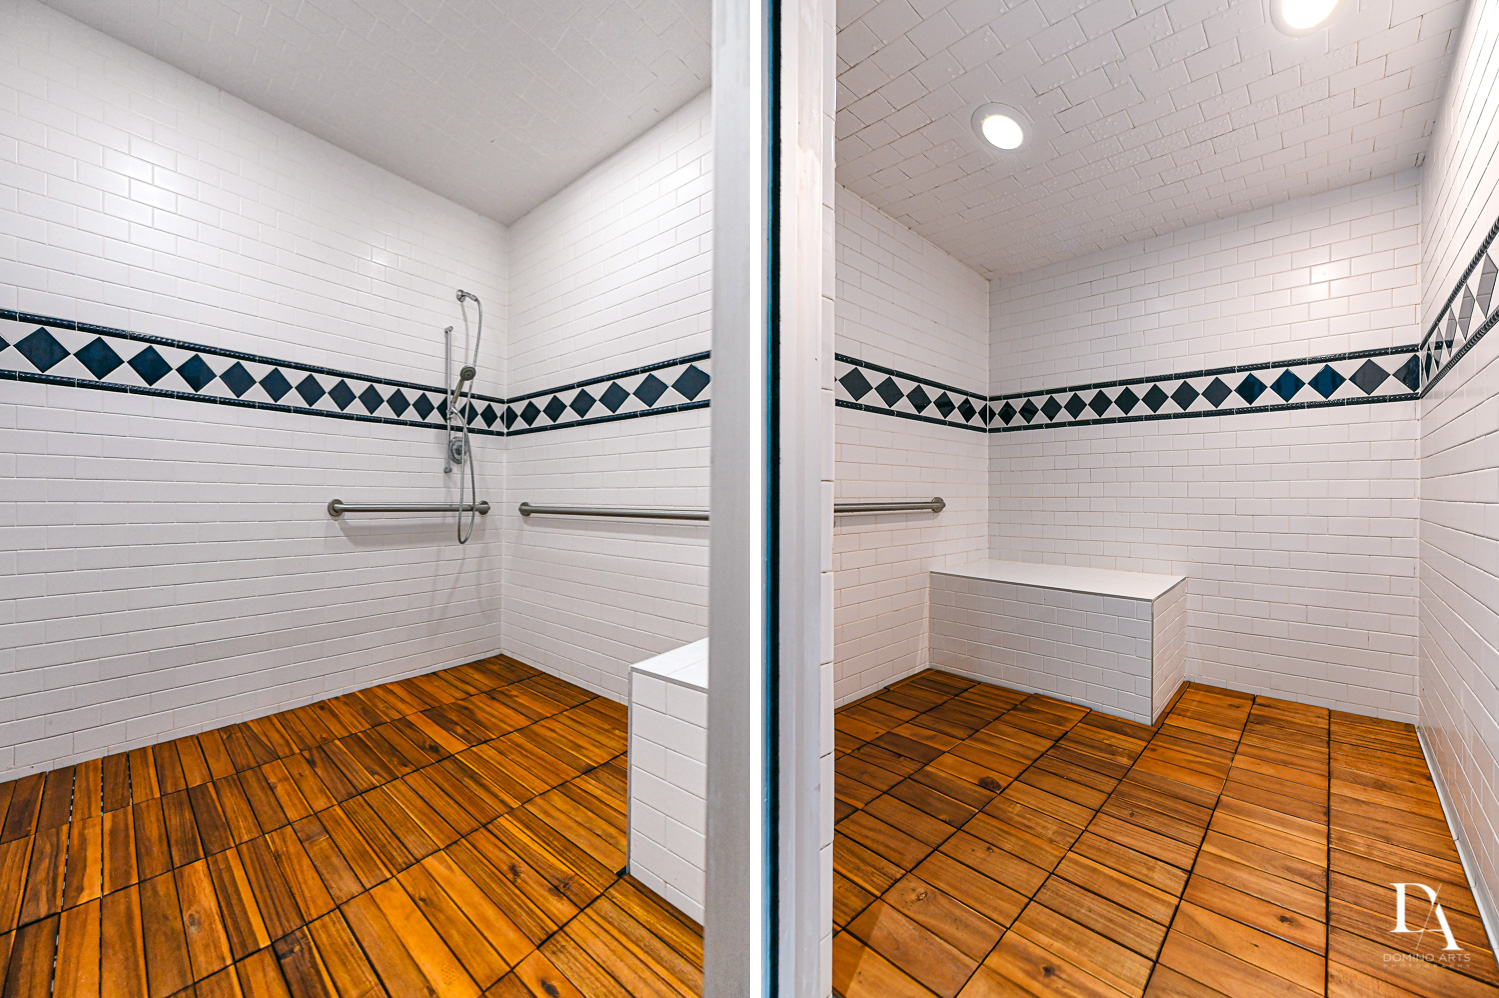 handicap showers at Harborage Yacht Club & Marina by Domino Arts Photography